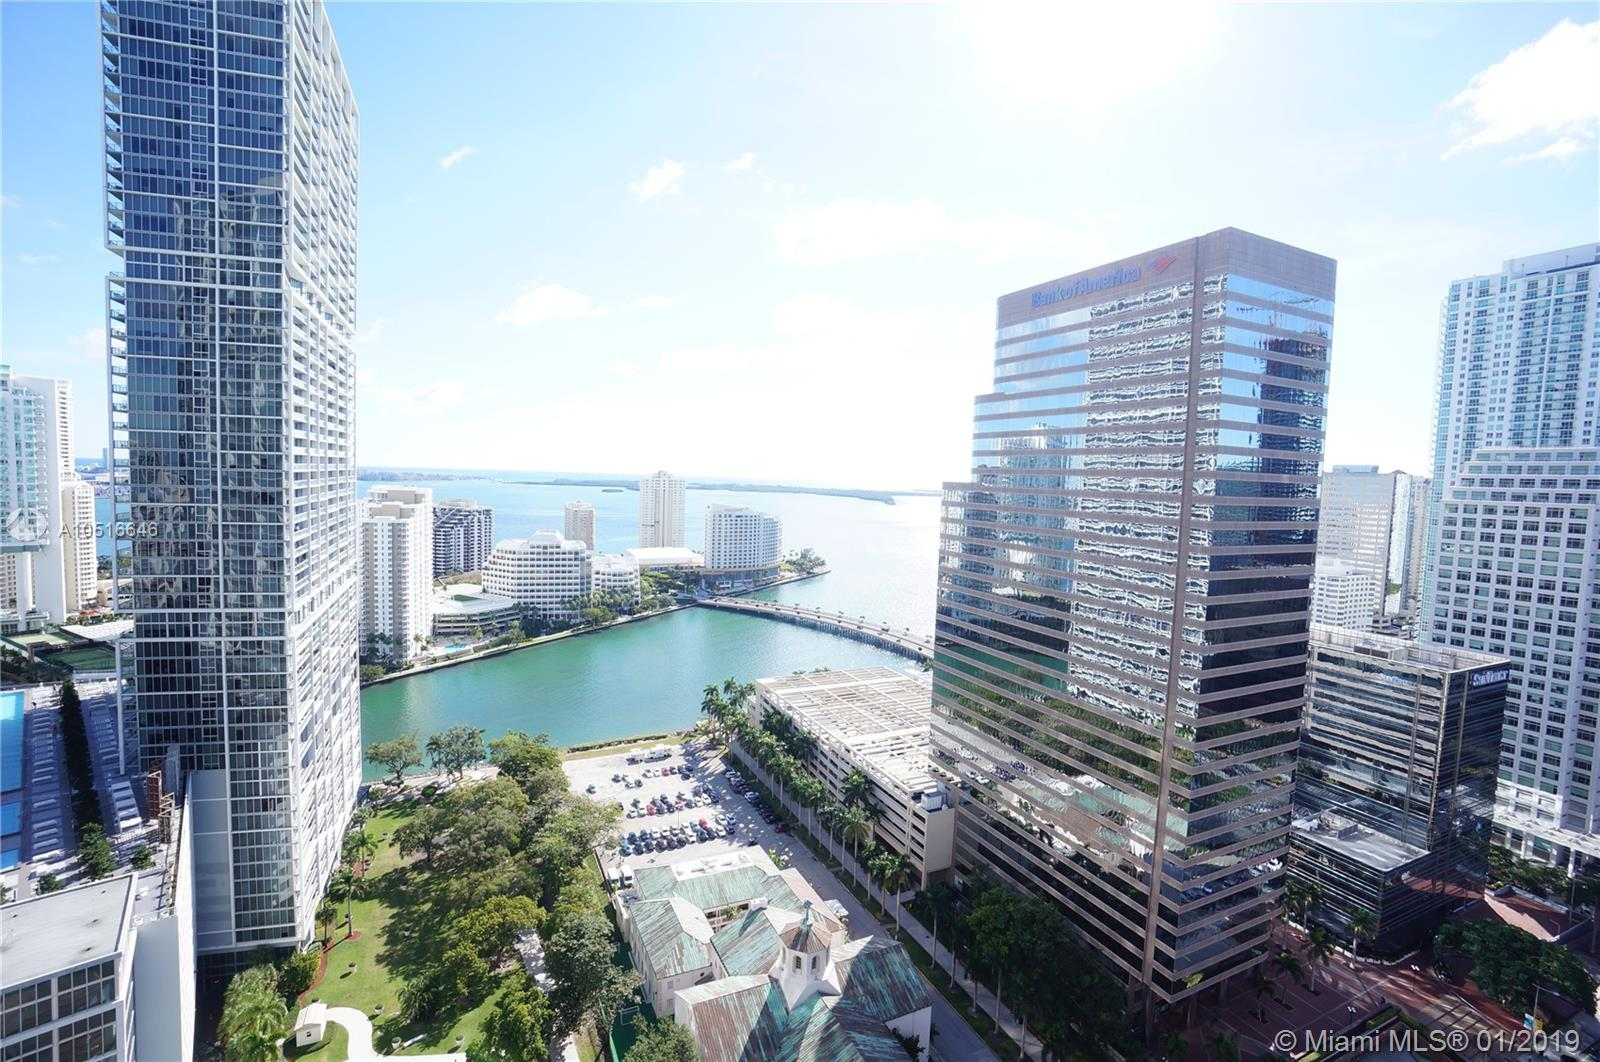 Amazing water and city view. view 1BR/1BA+Den in exclusive 500 Brickell (east tower). Generous & bright unit in the heart of Brickell Ave. European open style kitchen with snack bar & top of the line stainless steel appliances. Master suites with spacious bathroom w/ separate Jacuzzi tub & tempered glass shower. Enjoy the unique amenities: 3 spectacular pools including a lab pool and 42nd floor with panoramic view pool. State of the art fitness center, wine cellar room, sport bar room, his/hers hot jacuzzi, unique theater, walking distance of Brickell City Centre, Mary Brickell Village, the financial district, restaurants & entertainment. Quick access to main roads and expressways. Basic cable & internet included.